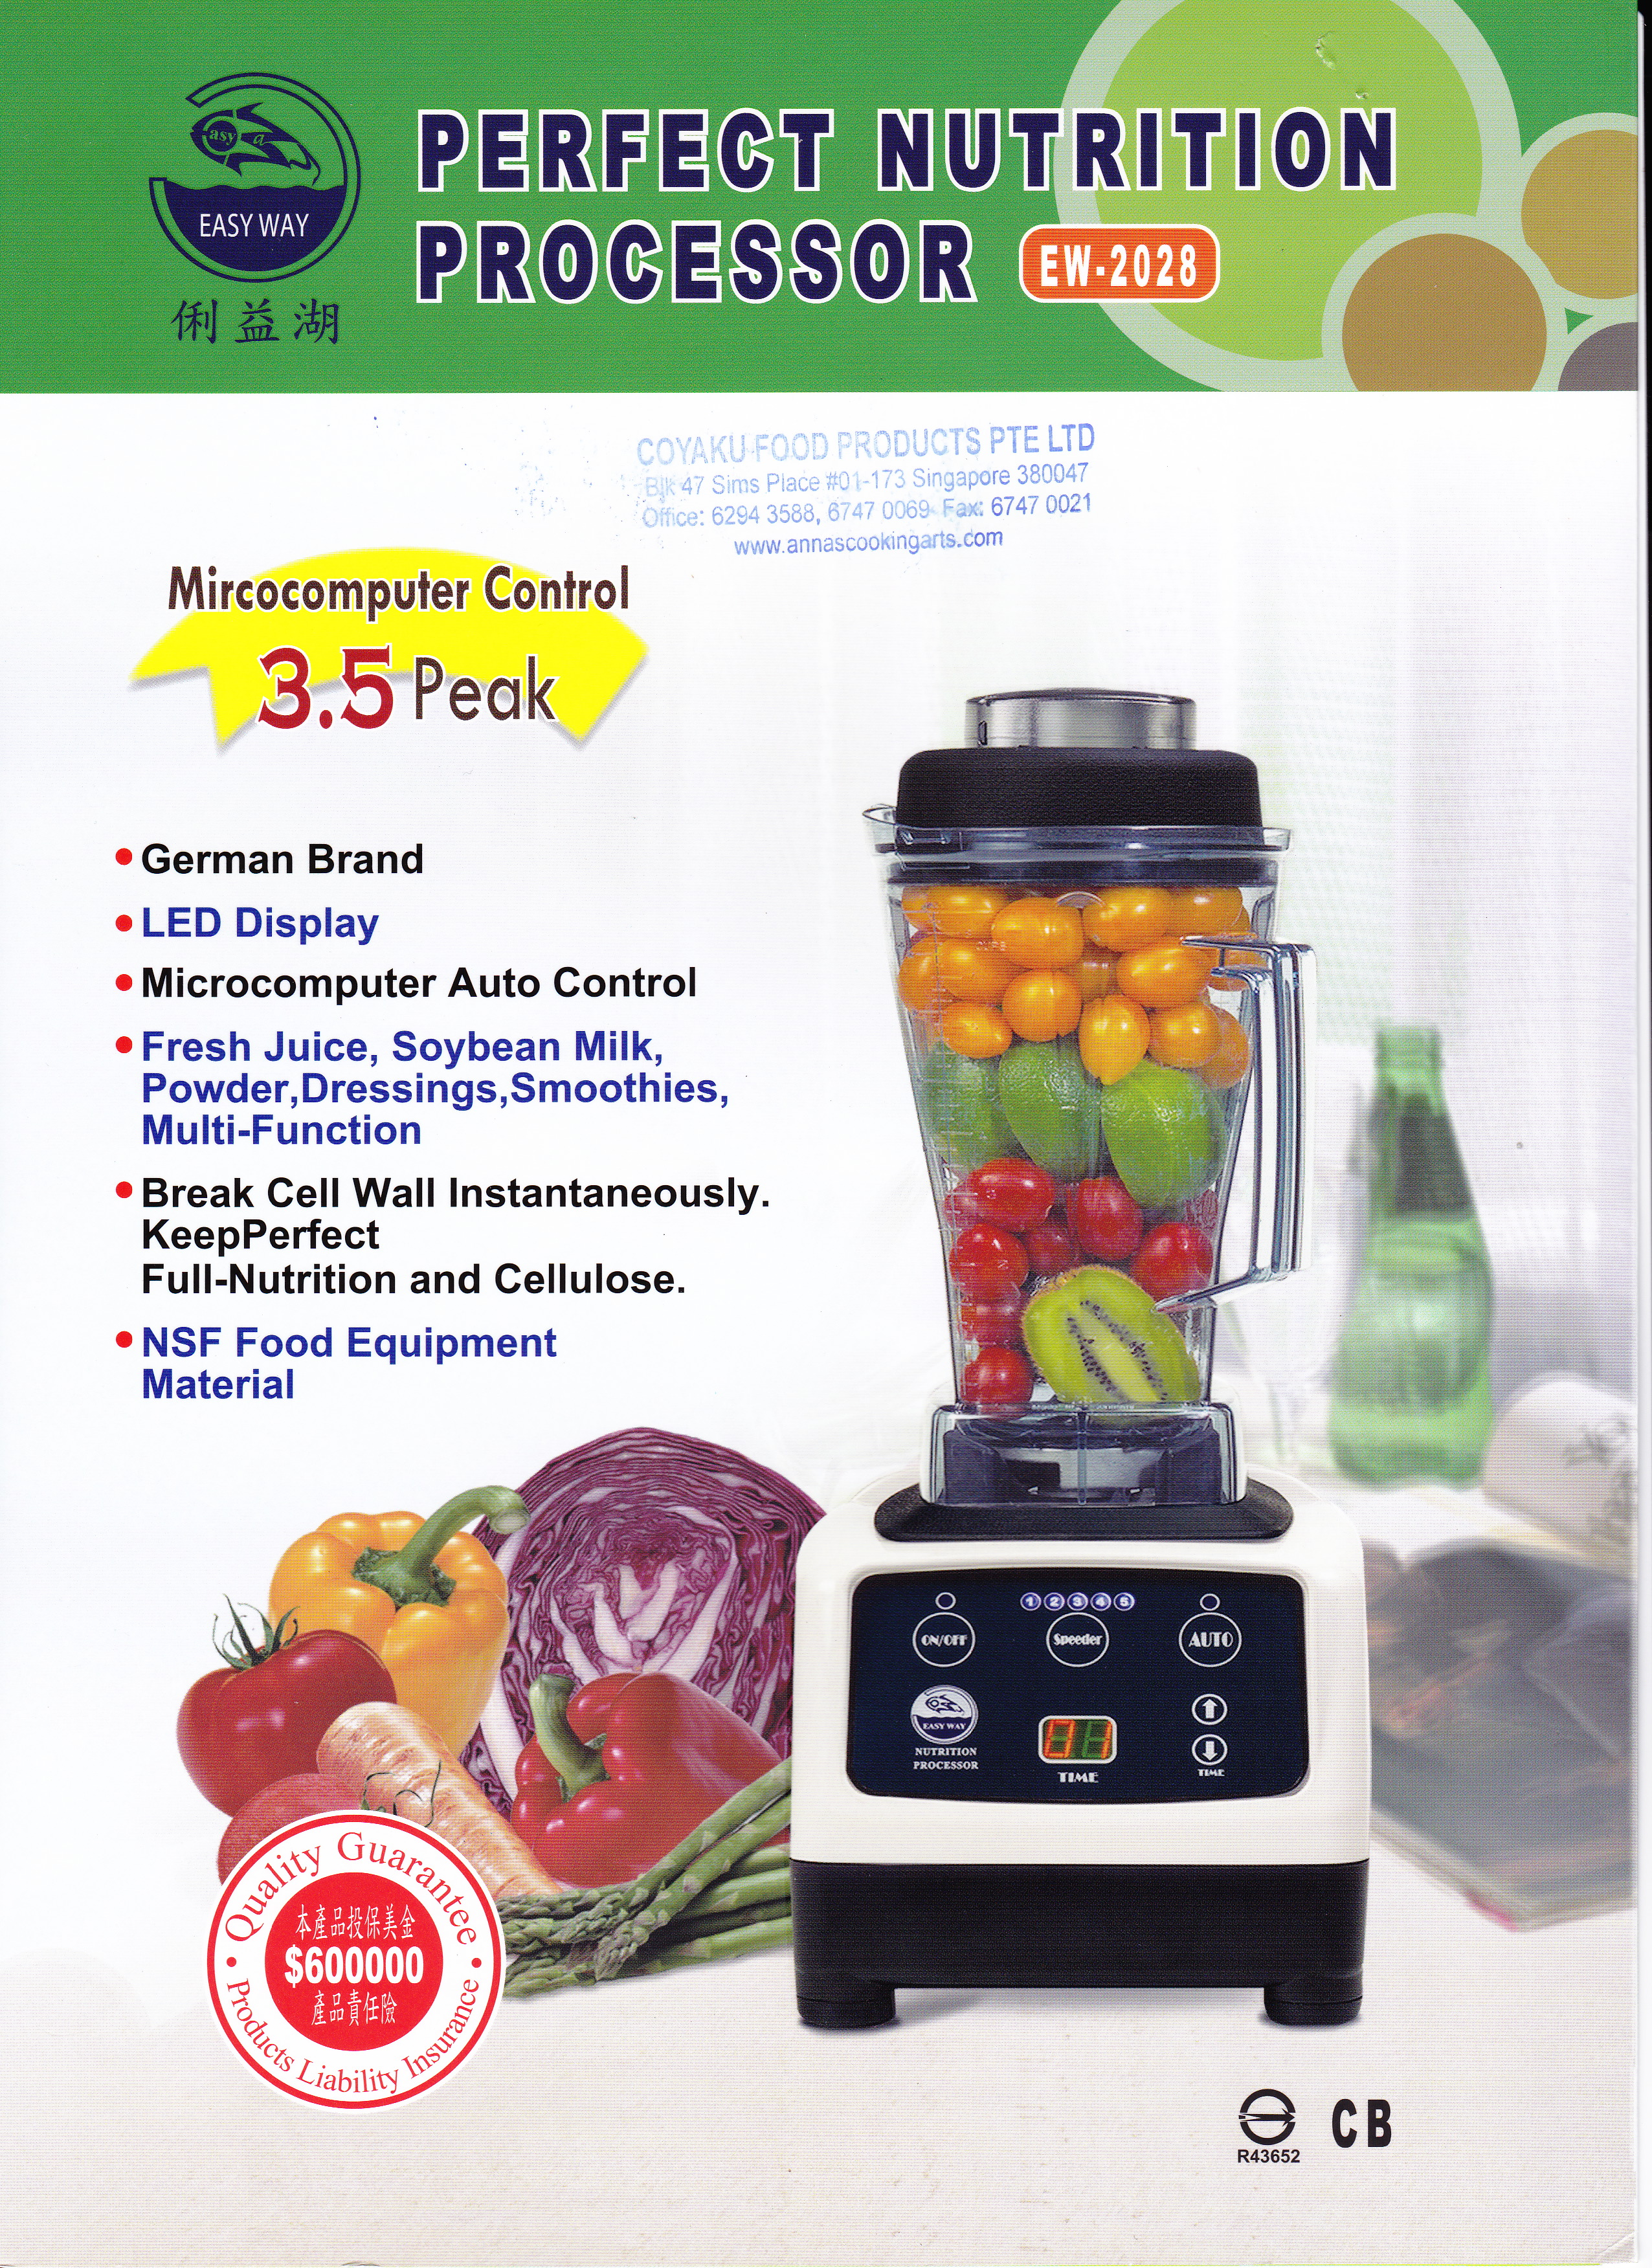 New Product: Perfect Nutrition Processor (EW-2028)